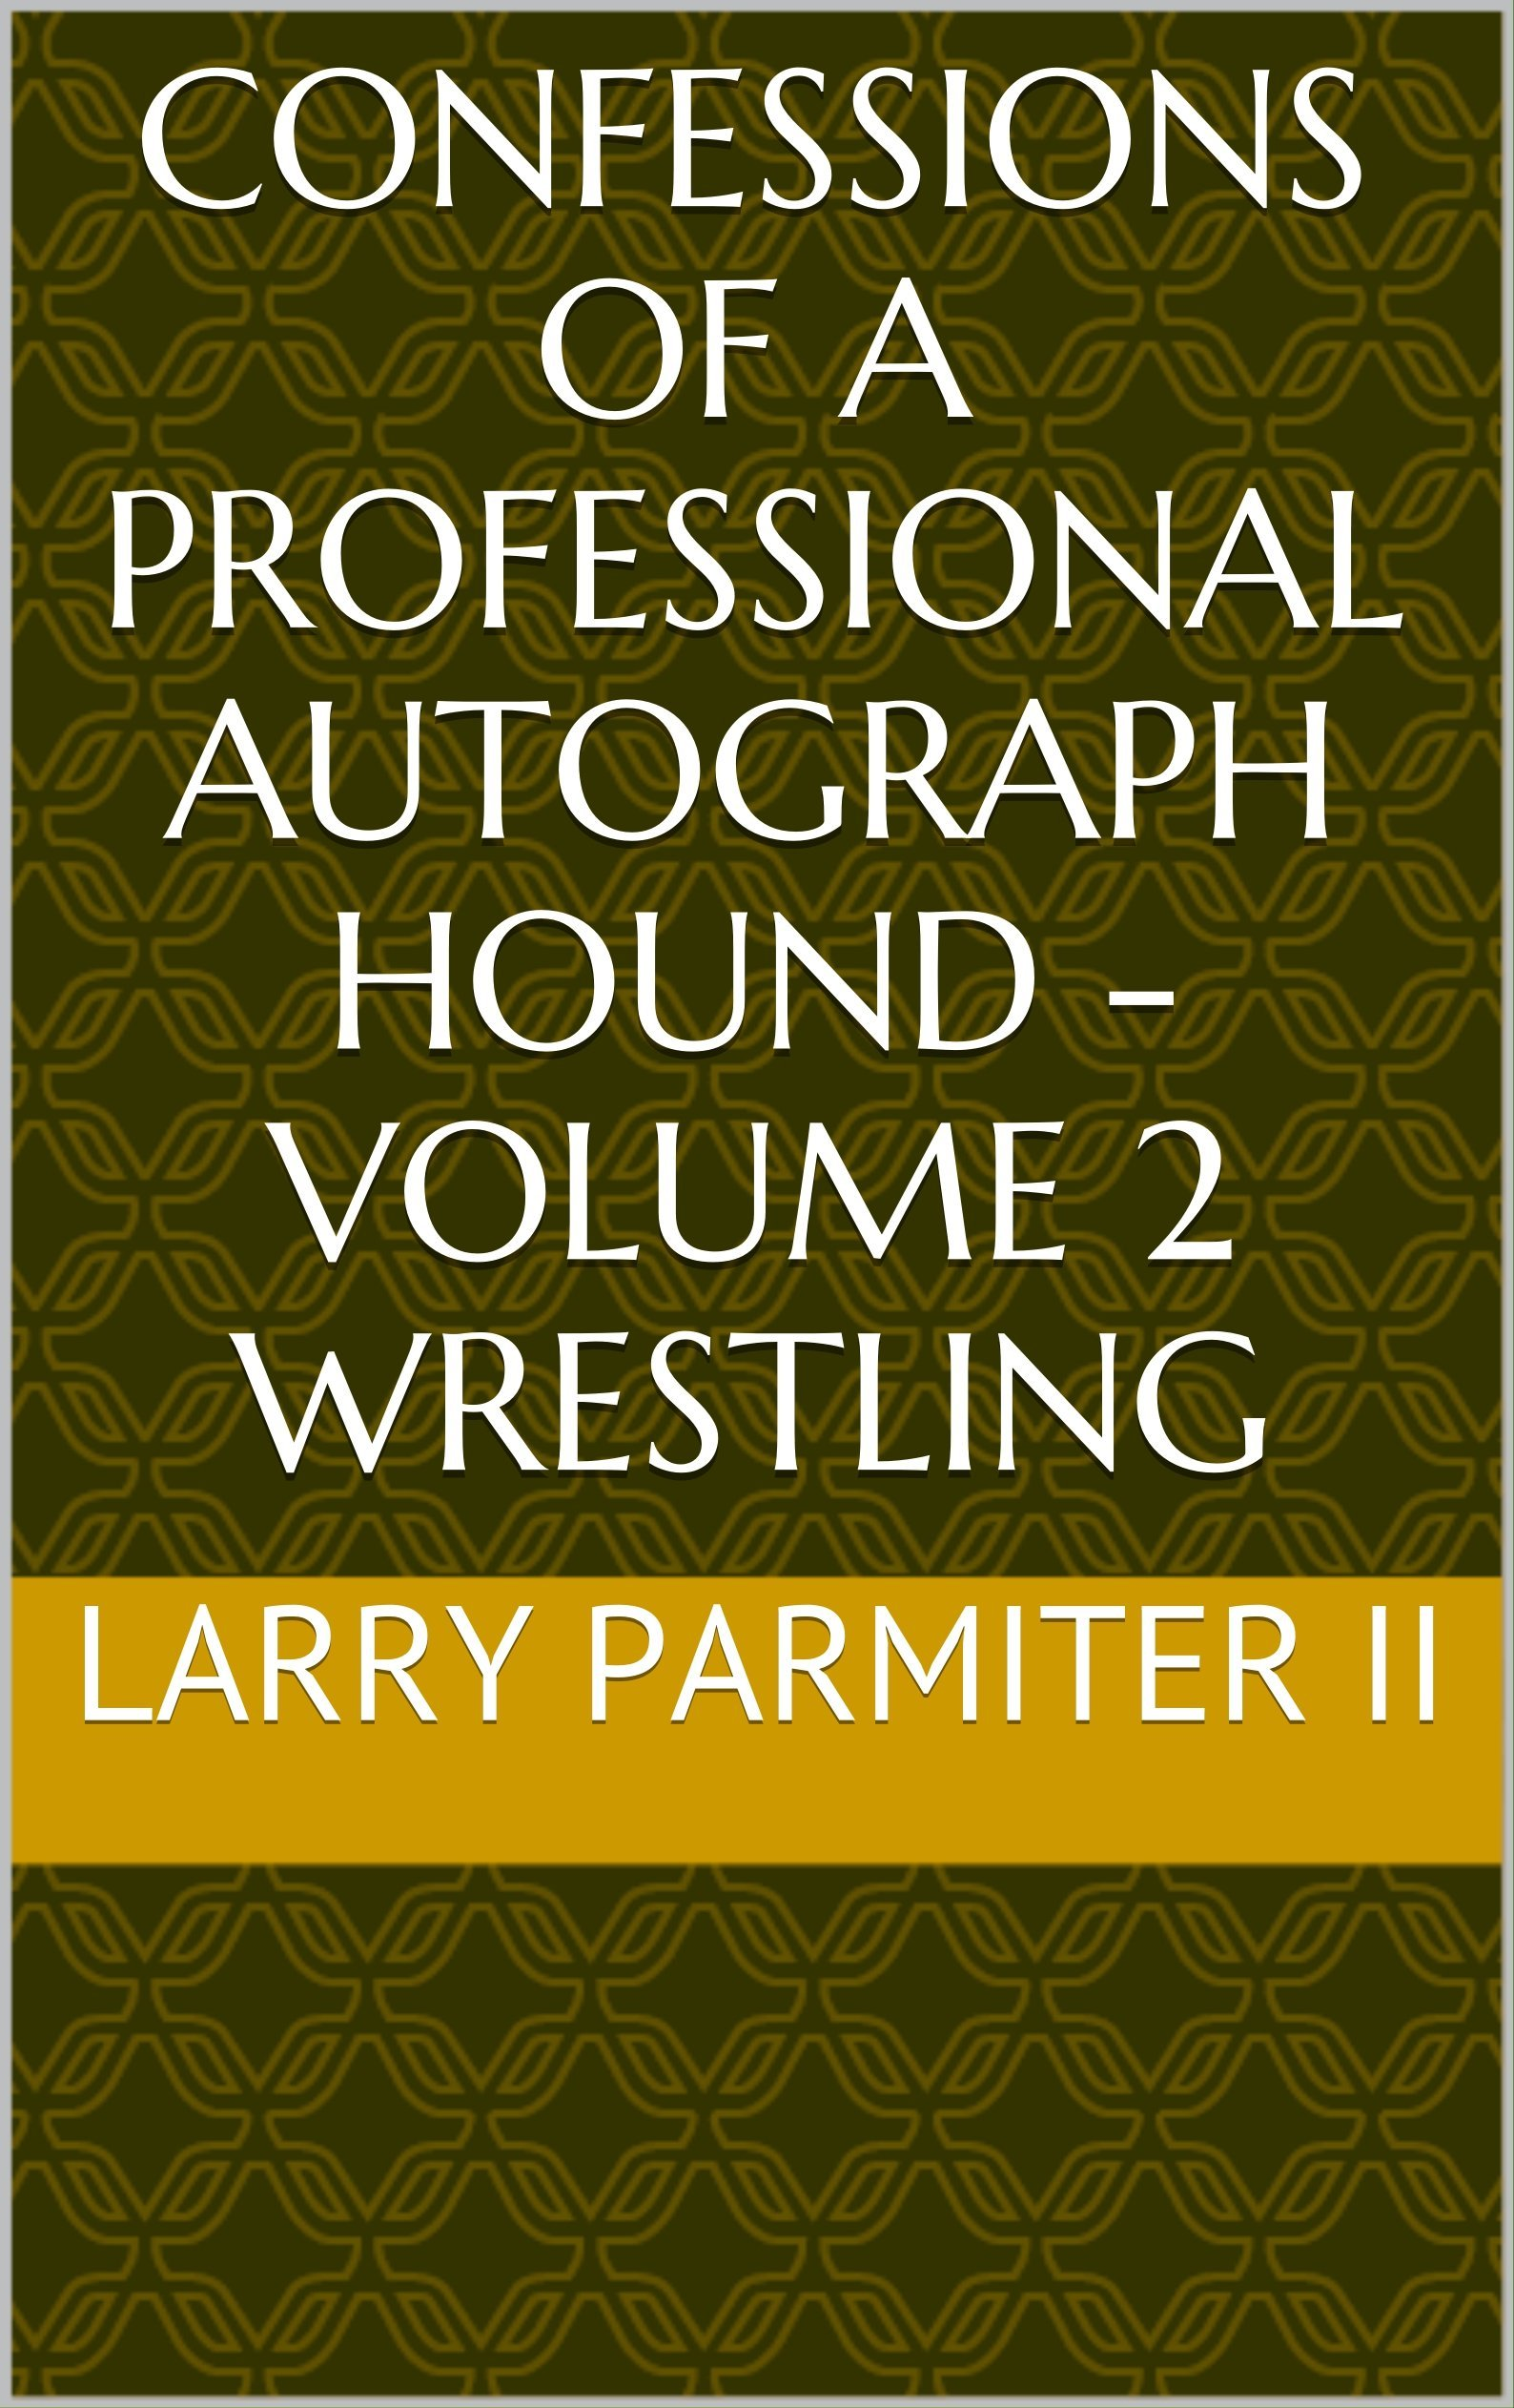 Confessions of a Professional Autograph Hound - Volume 2 Wrestling (English Edition)